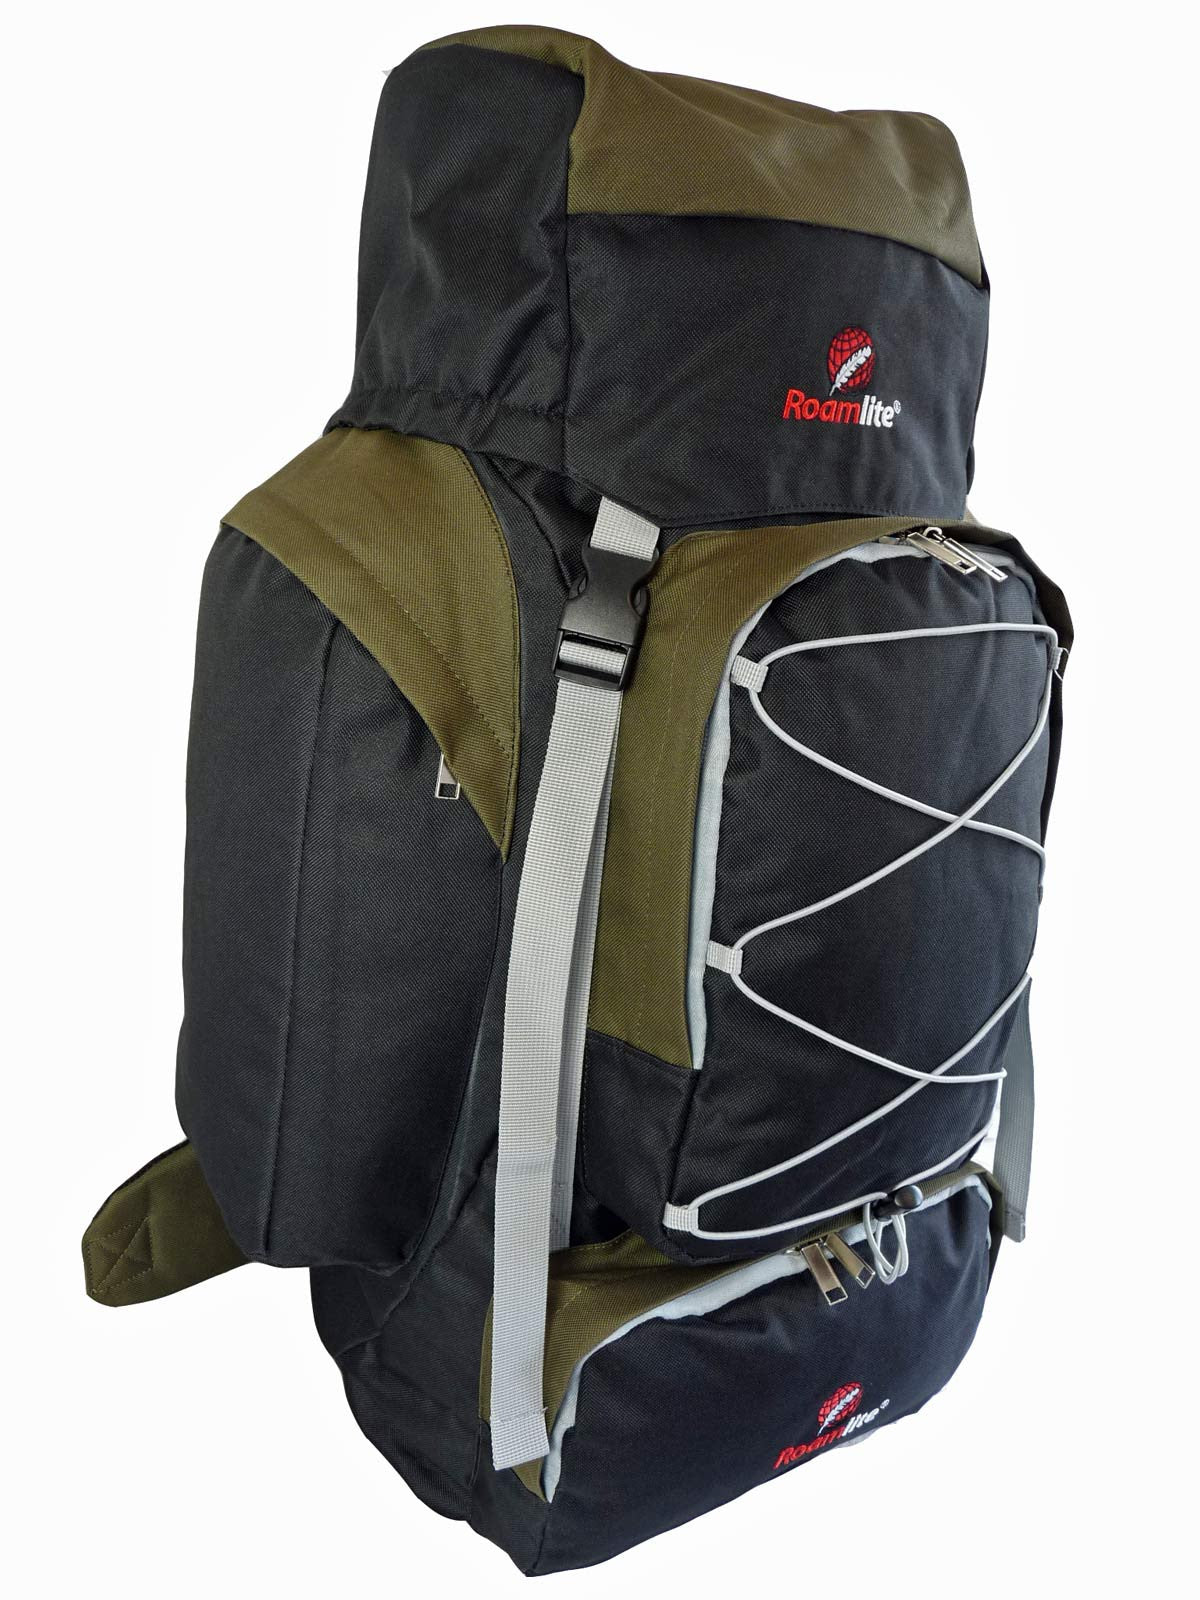 80 100 125 litre backpack green side view